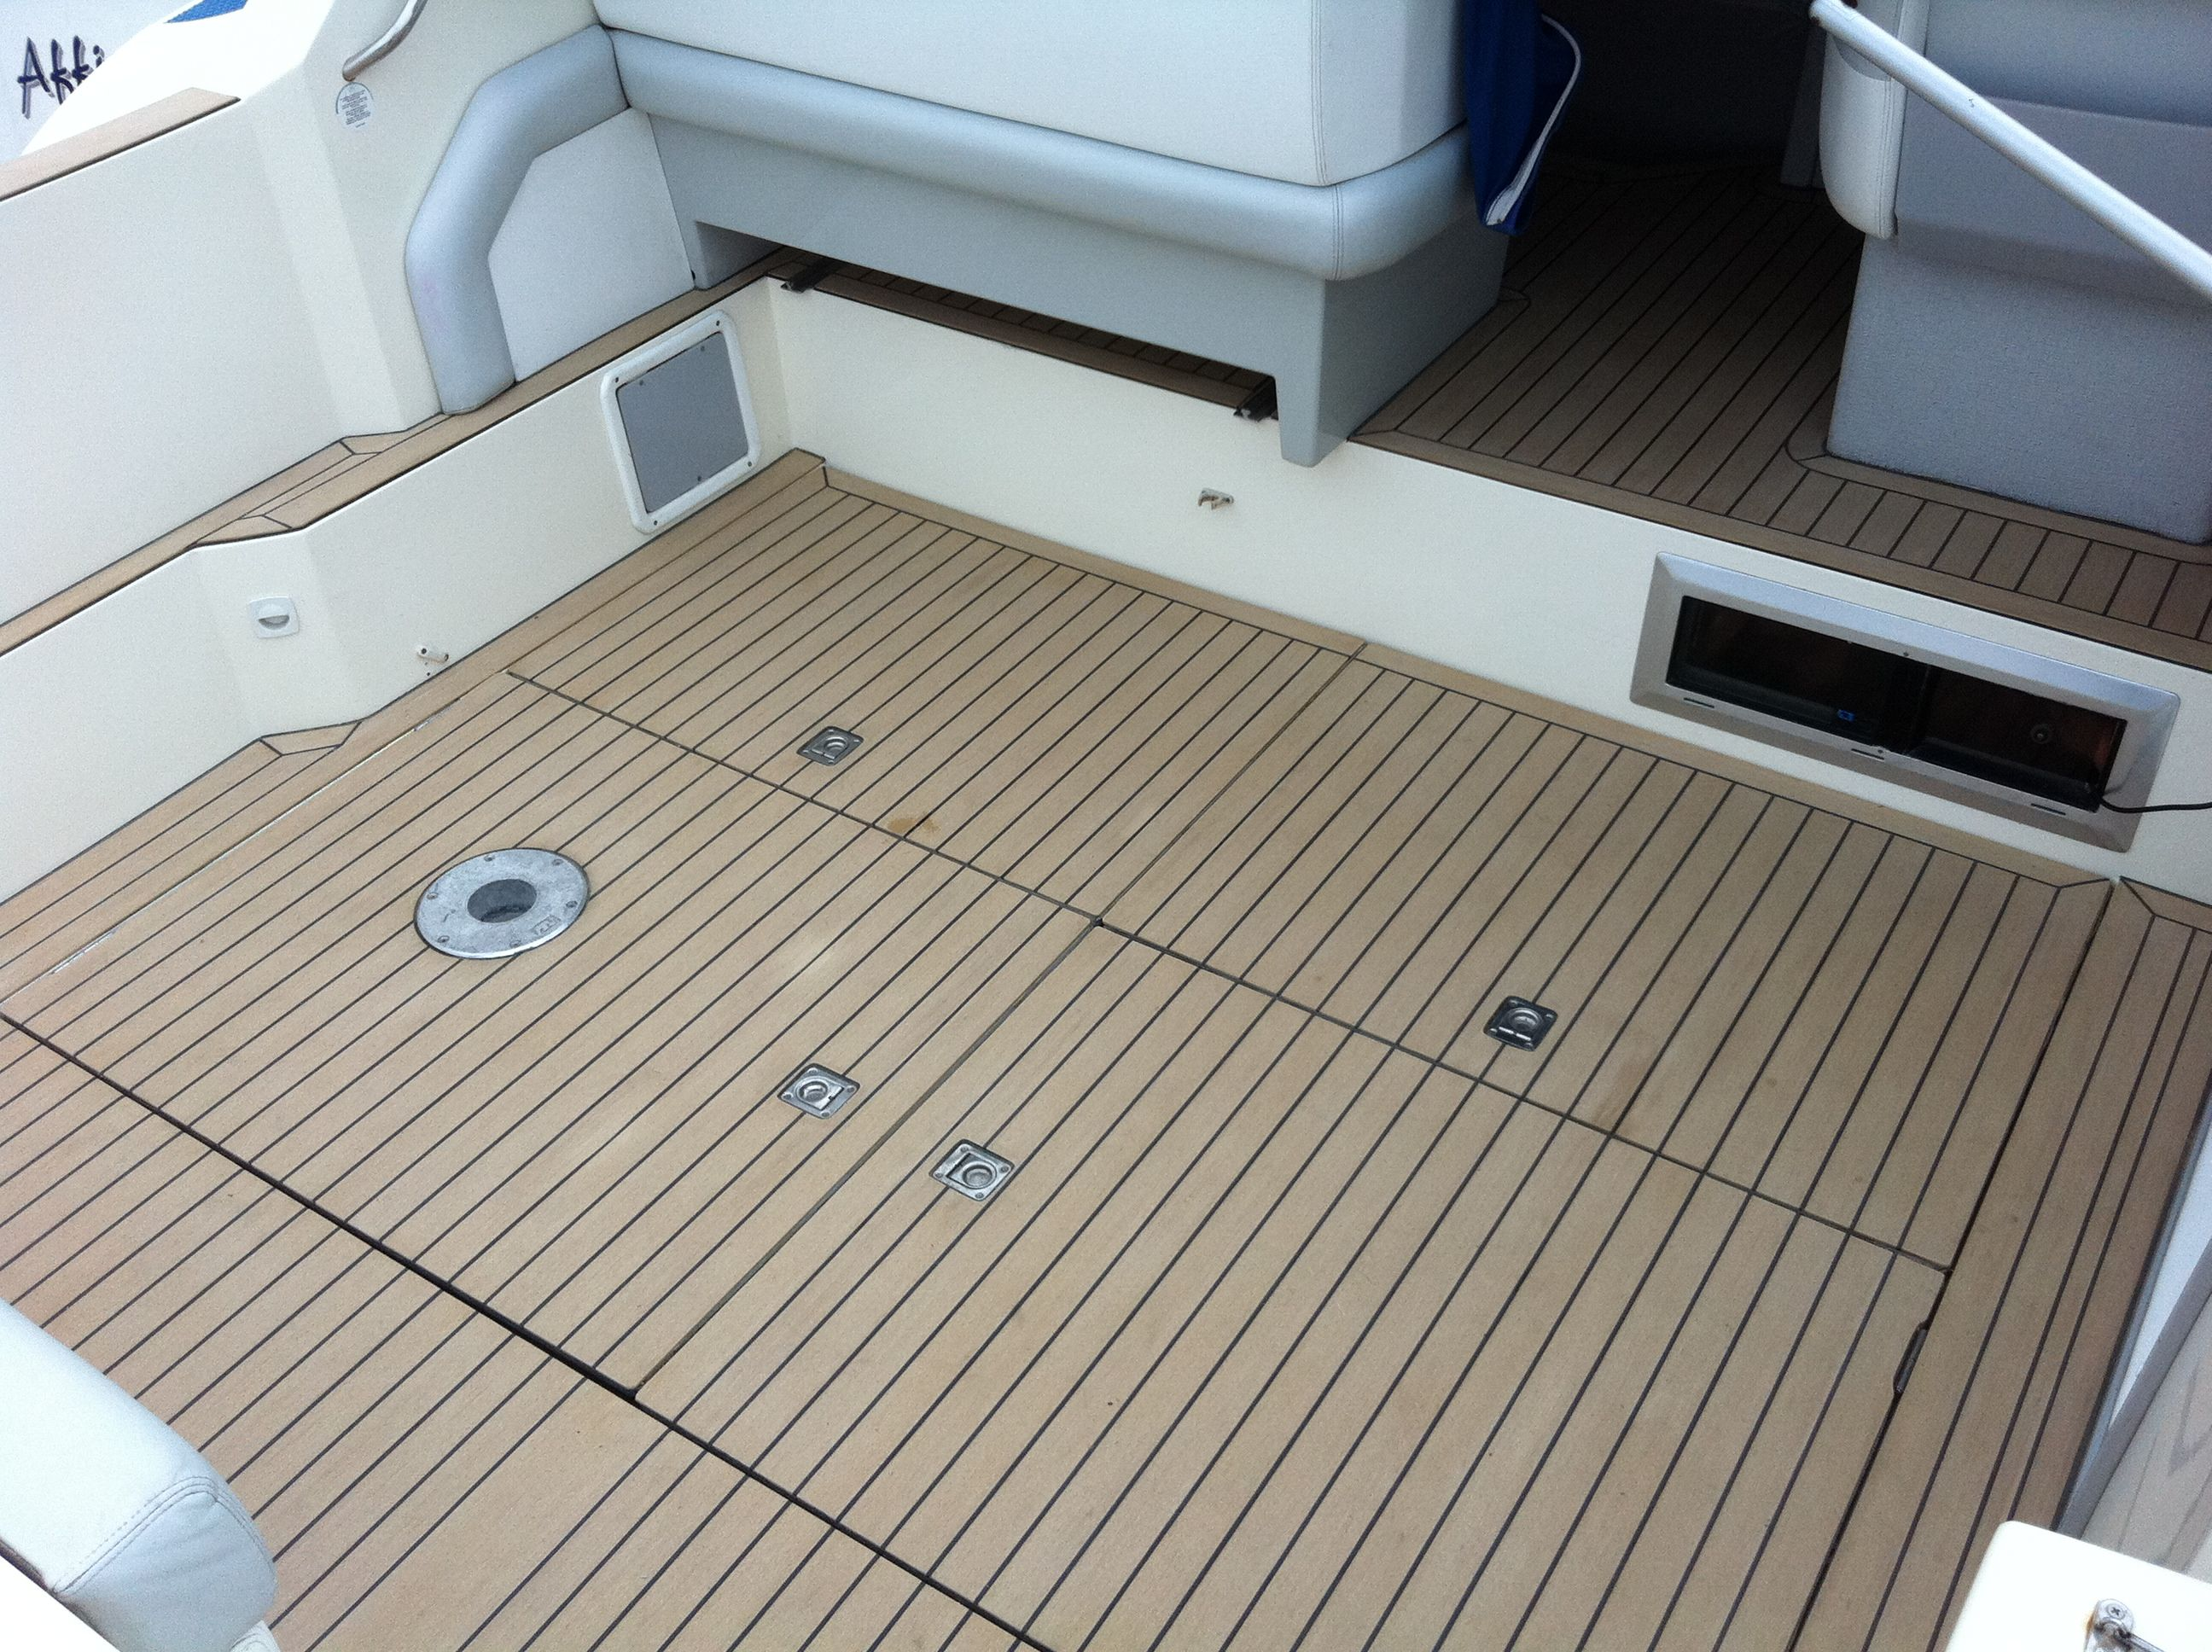 innovations high old flooring floor canvas boat to quality offers marine custom carpet carpets or can it pattern a your grade want fit tight if services you as we use